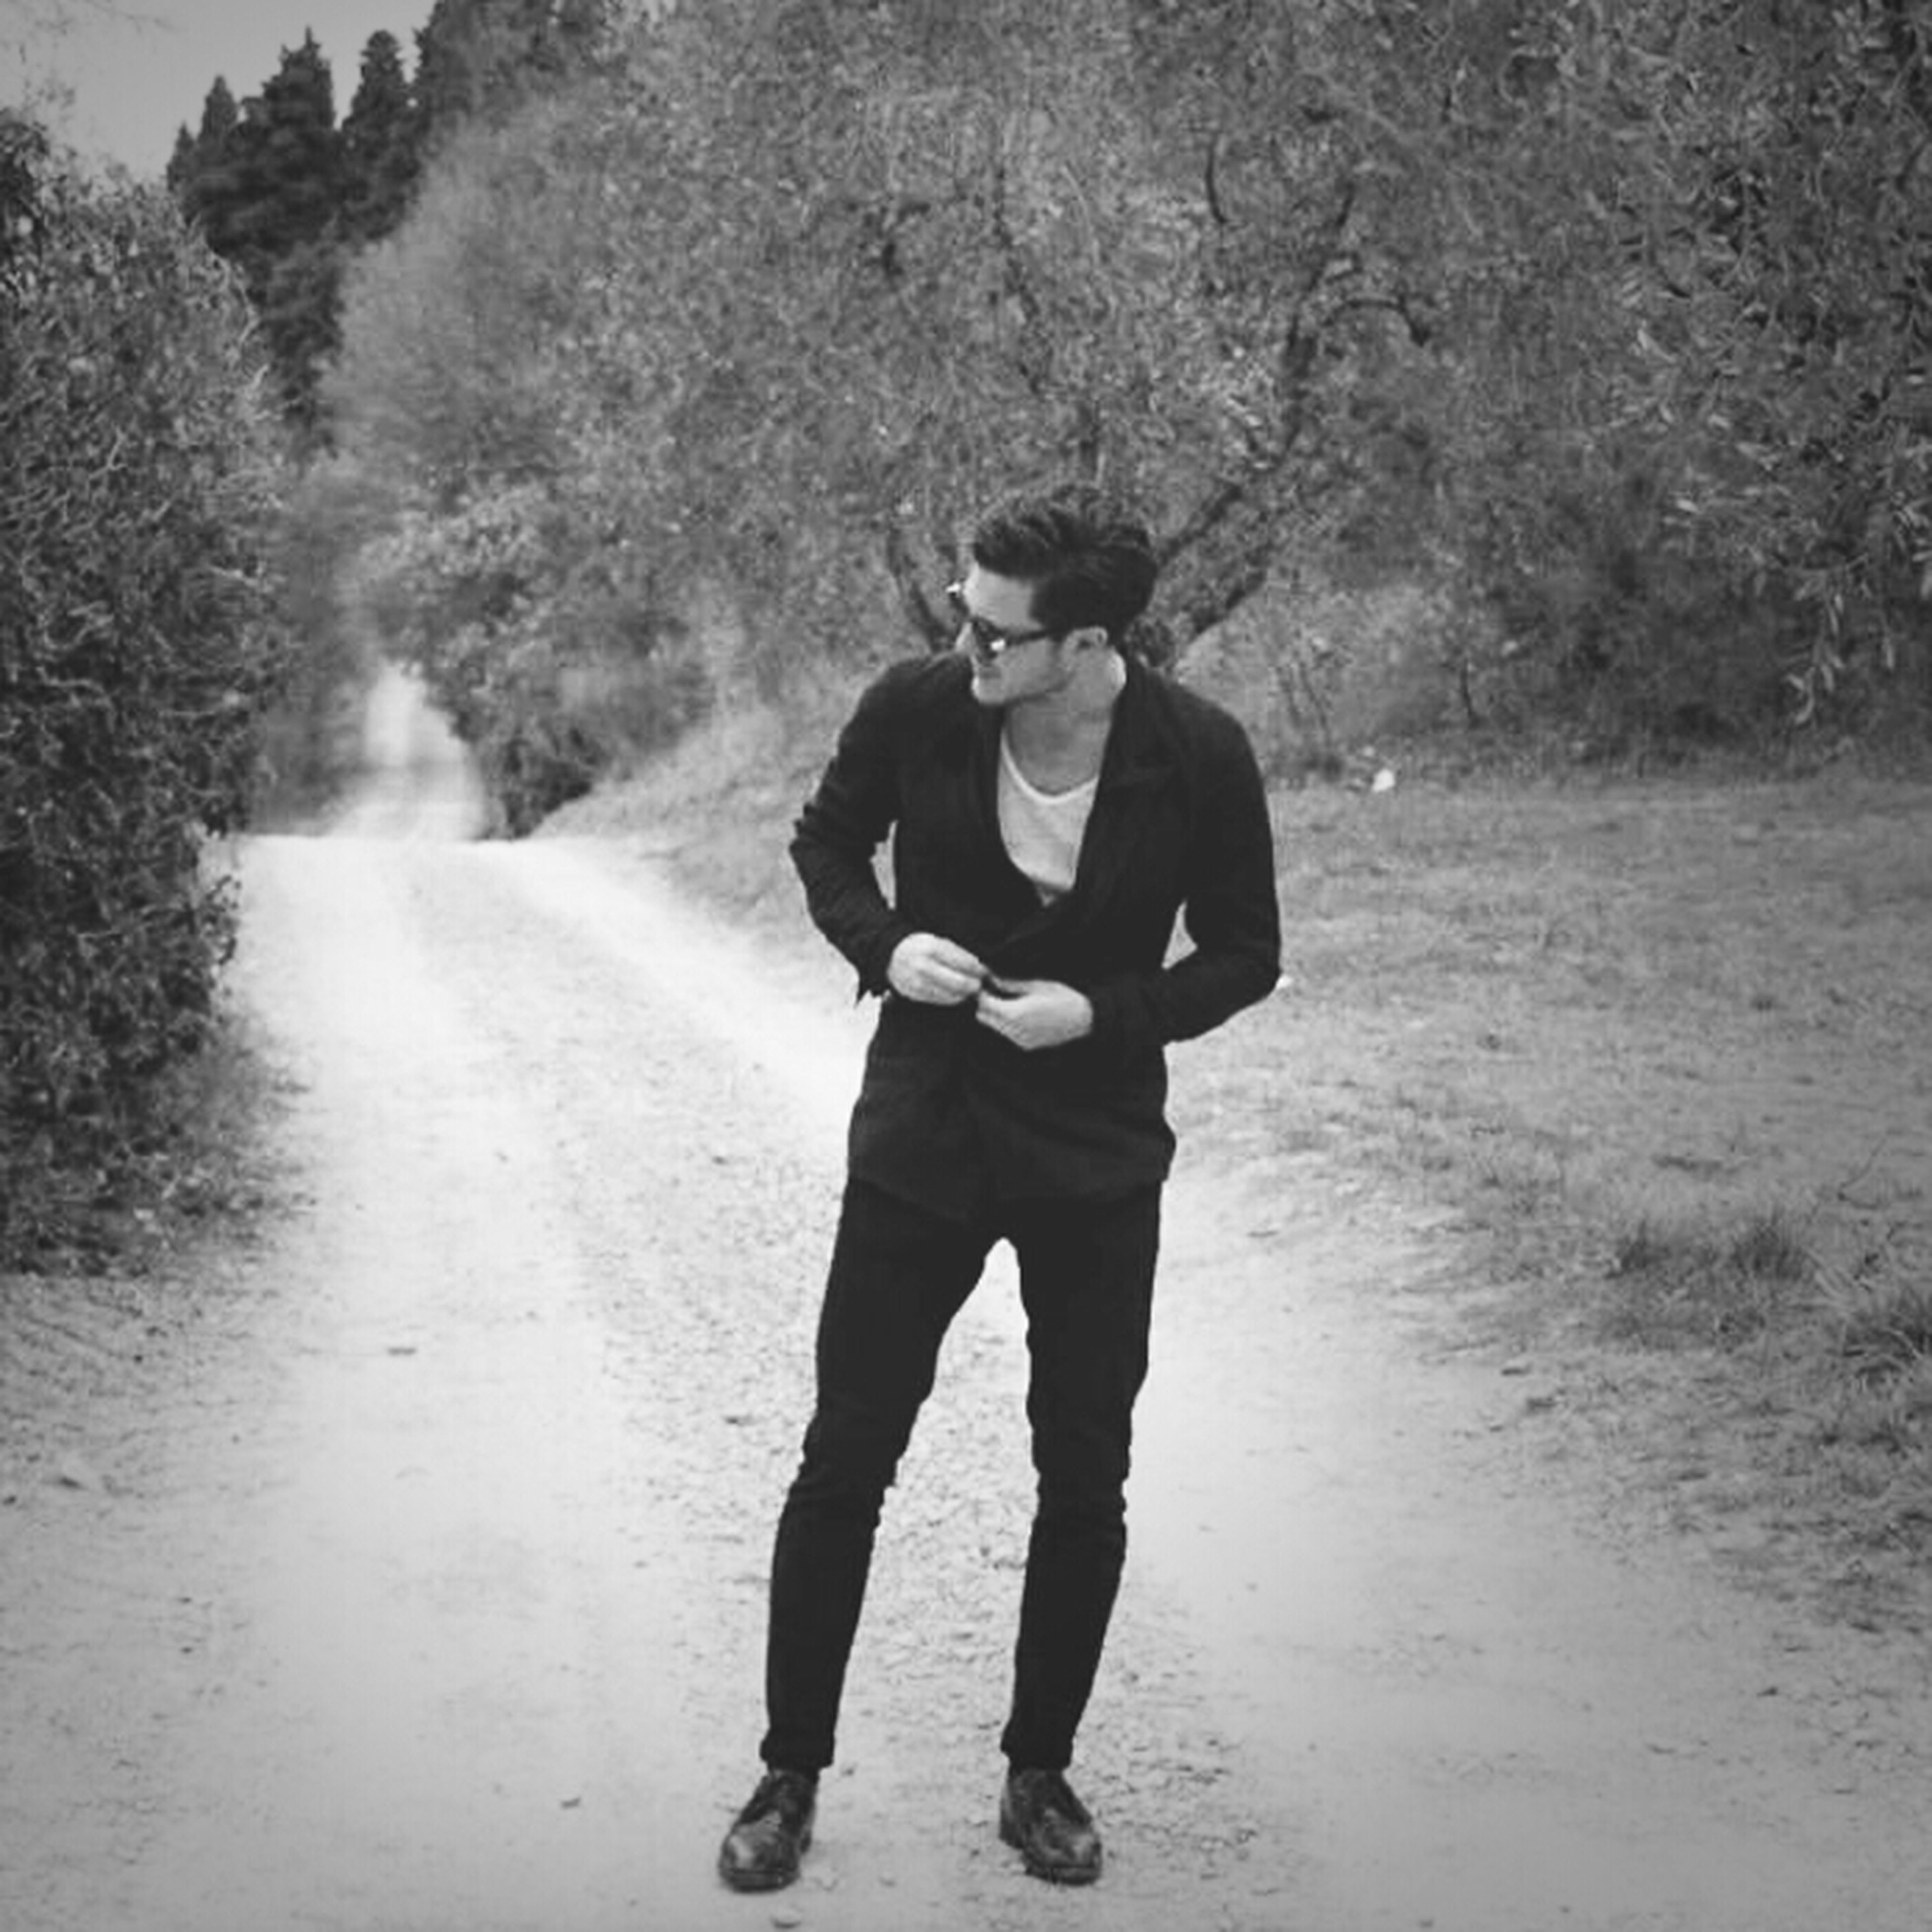 full length, lifestyles, tree, rear view, leisure activity, casual clothing, standing, warm clothing, walking, day, road, men, childhood, person, field, outdoors, nature, front view